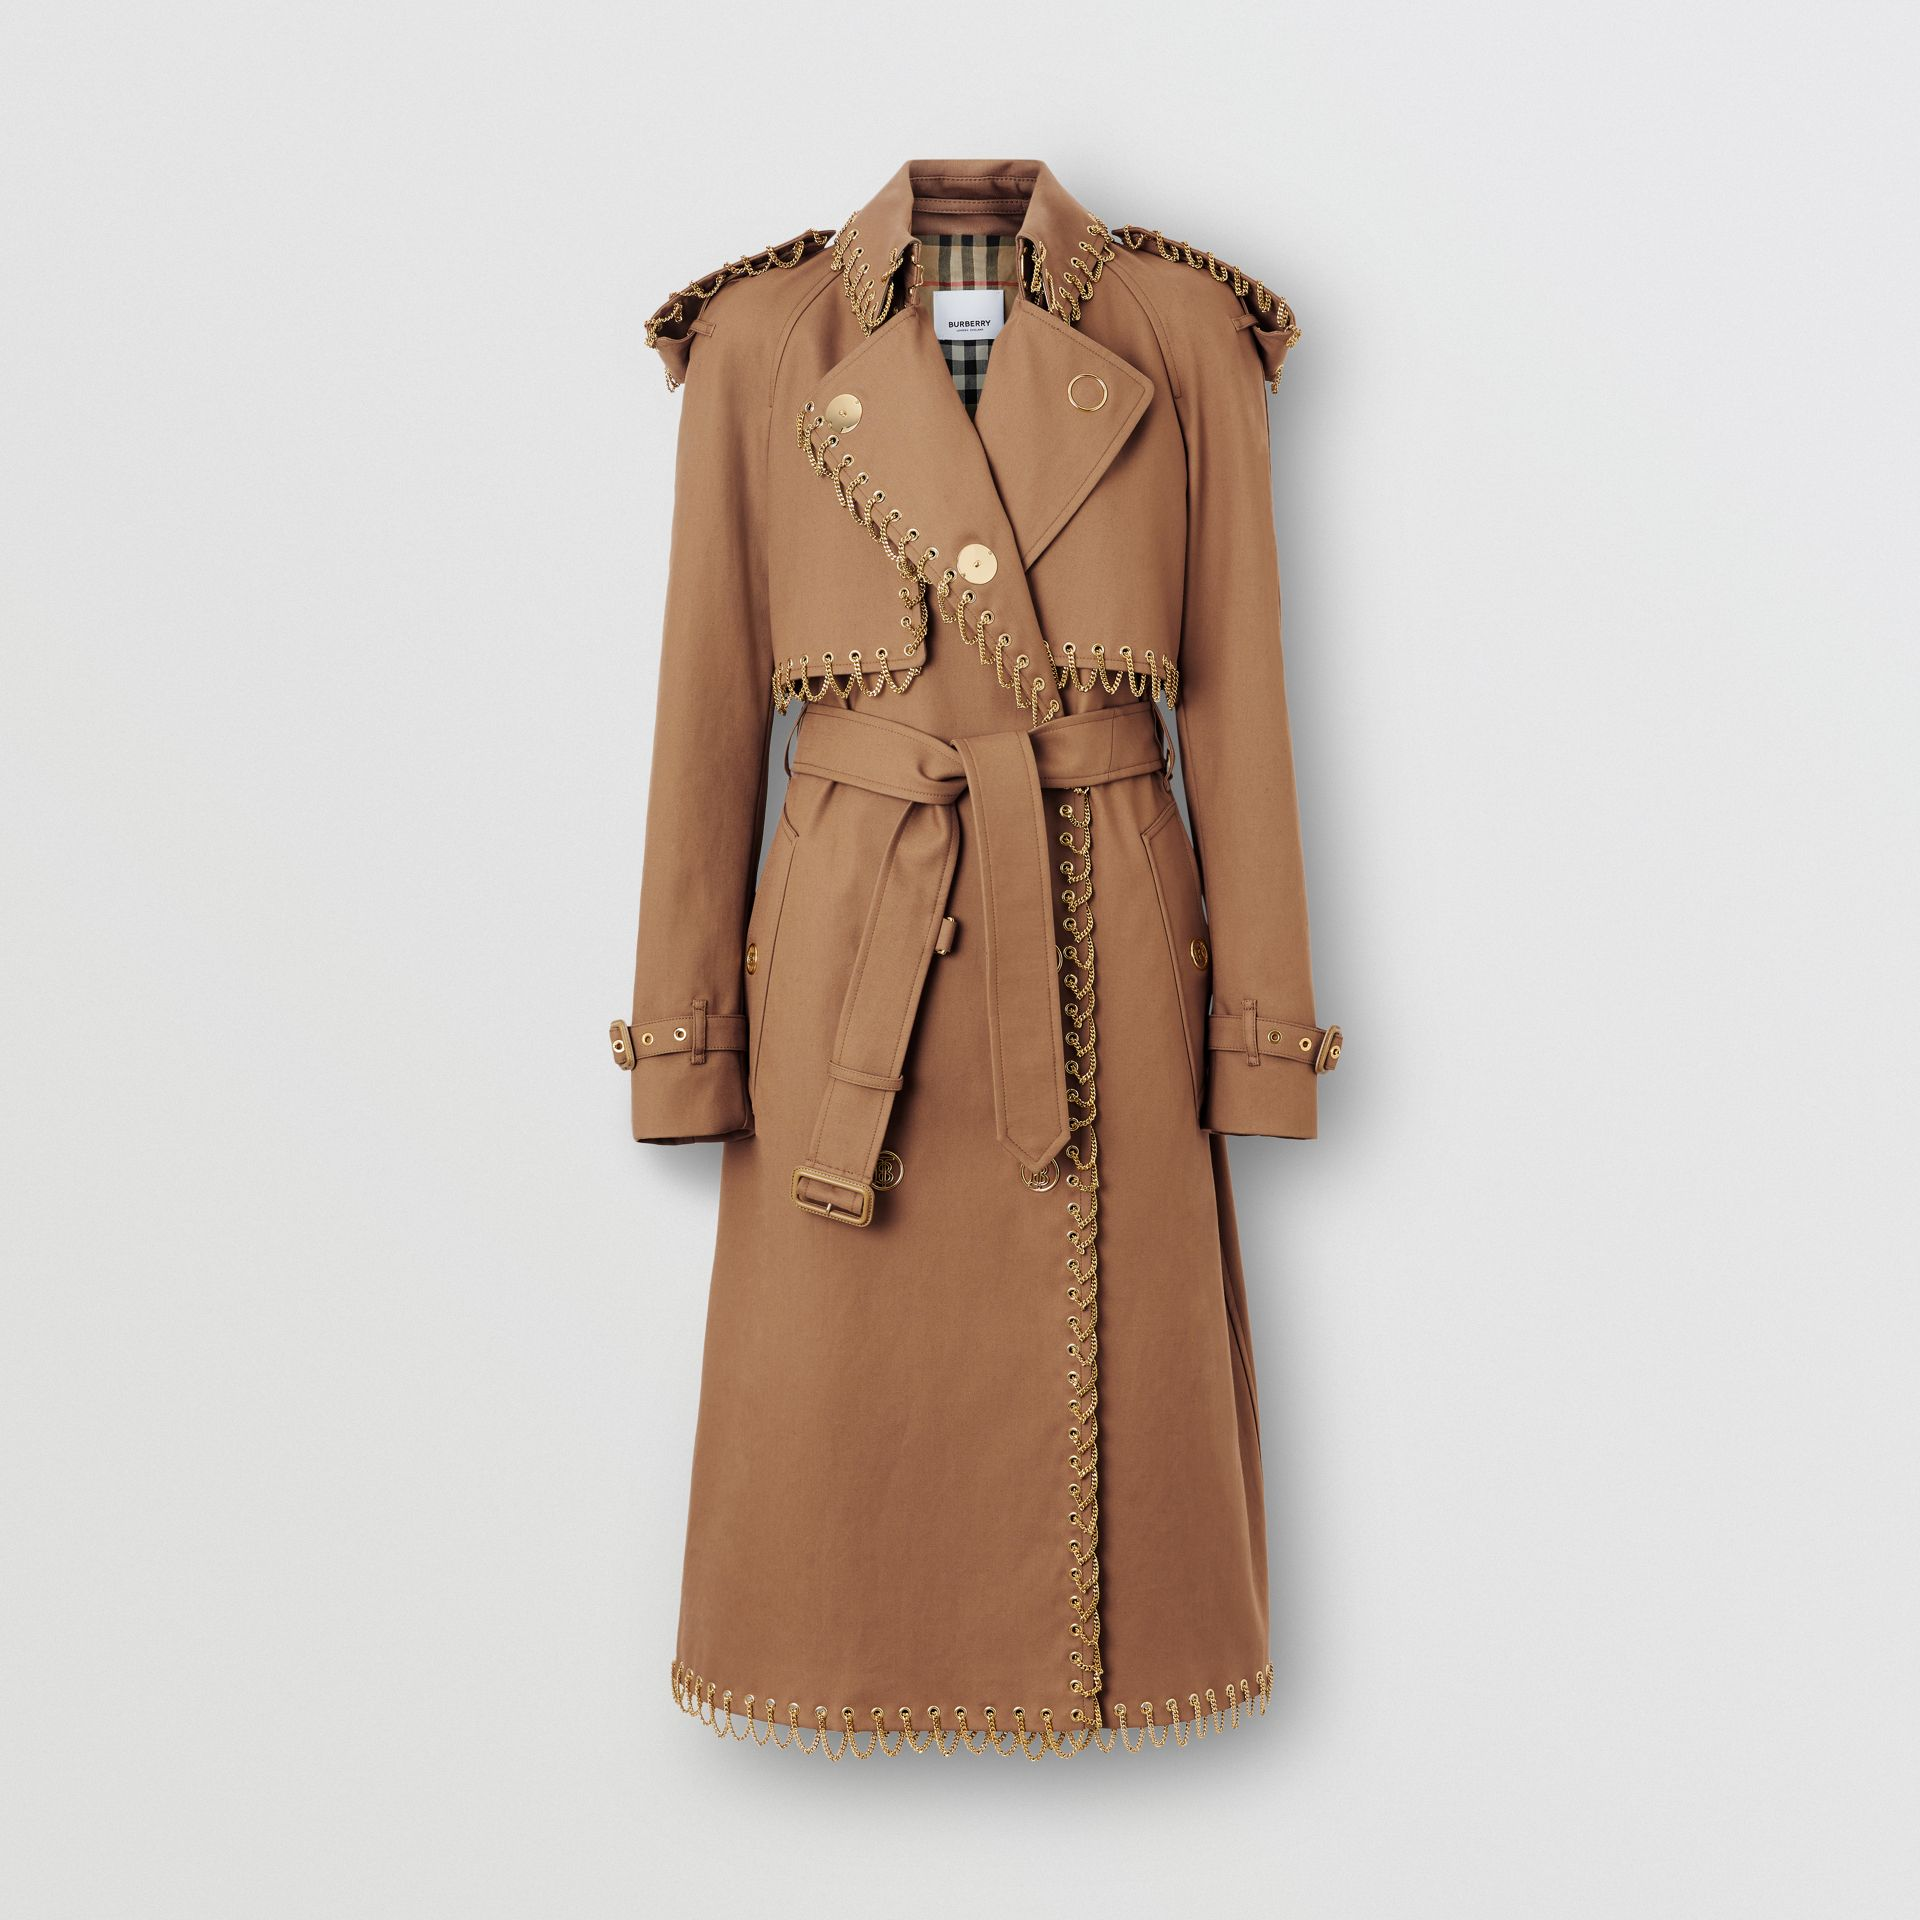 Chain Detail Cotton Gabardine Trench Coat in Warm Walnut - Women | Burberry Singapore - gallery image 3